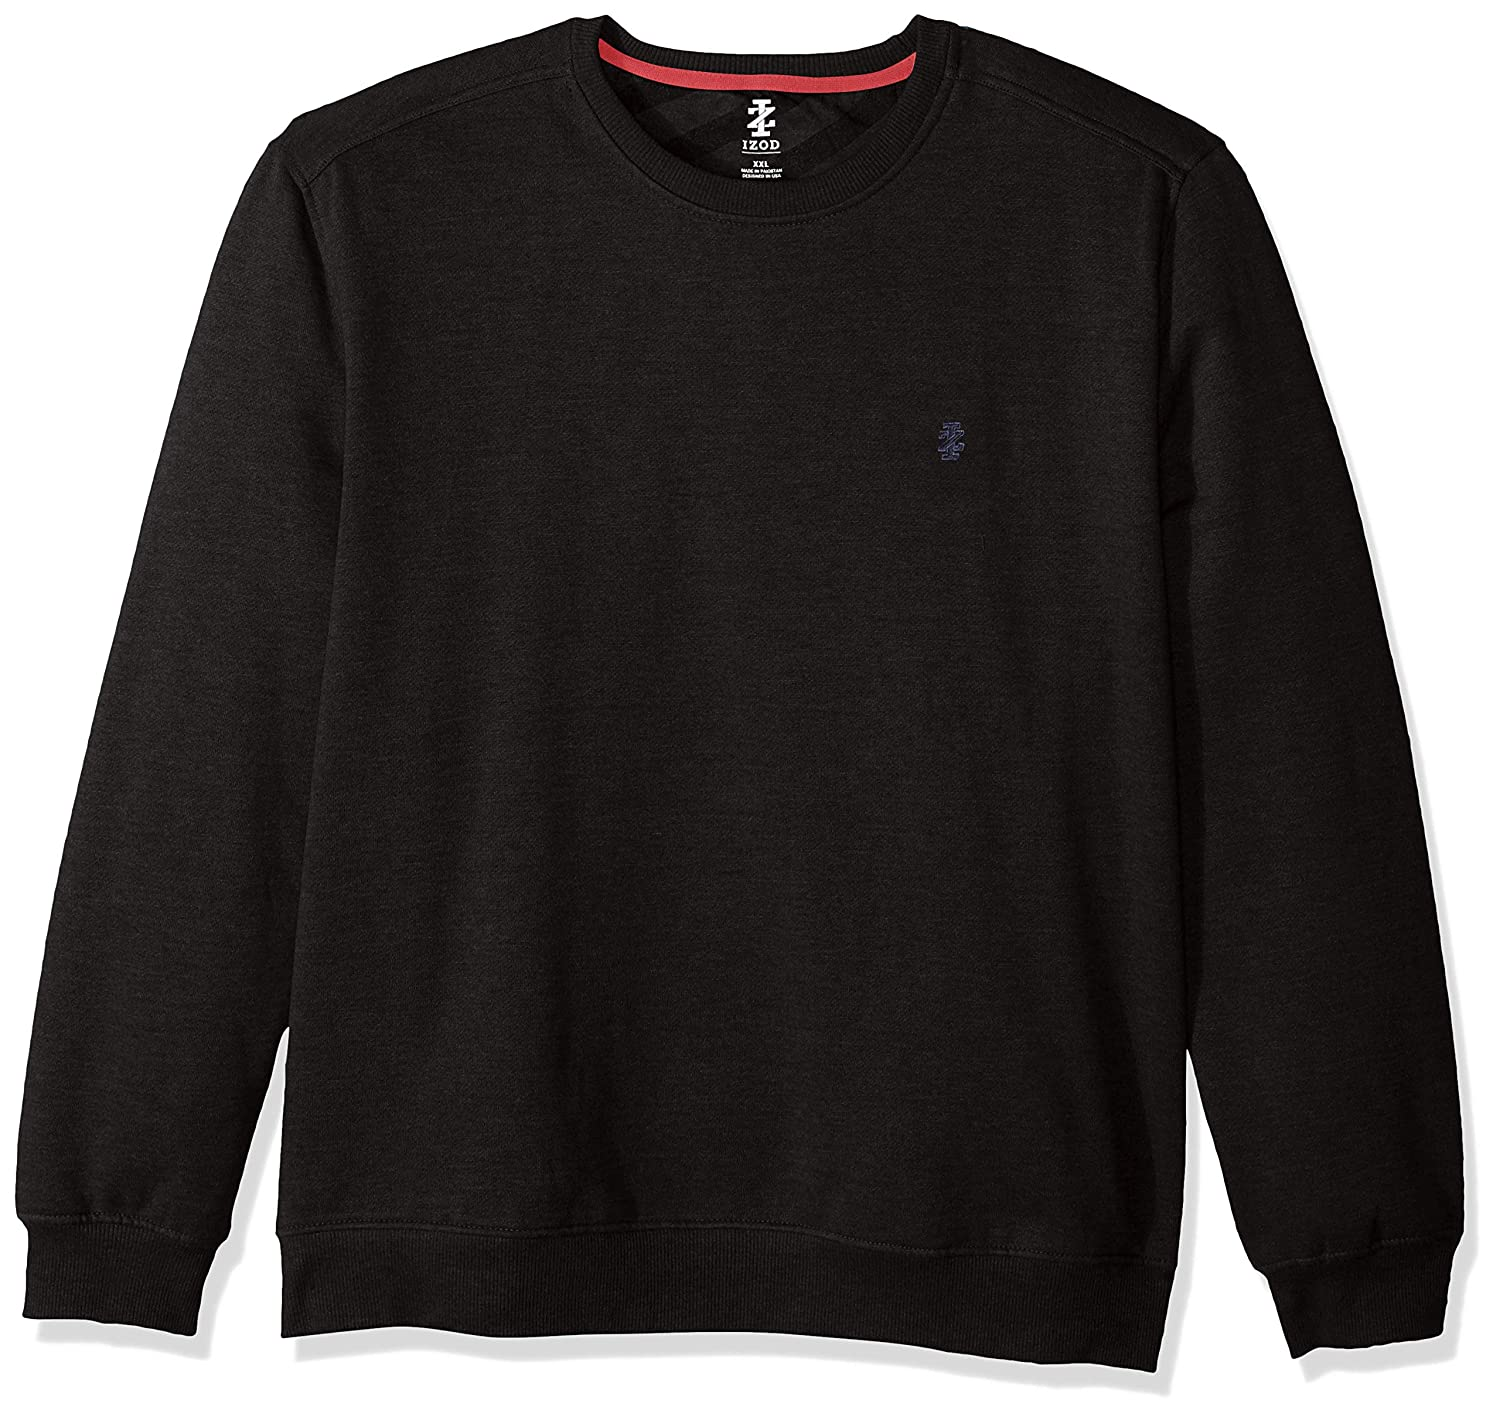 IZOD Mens Advantage Performance Crewneck Fleece Sweatshirt